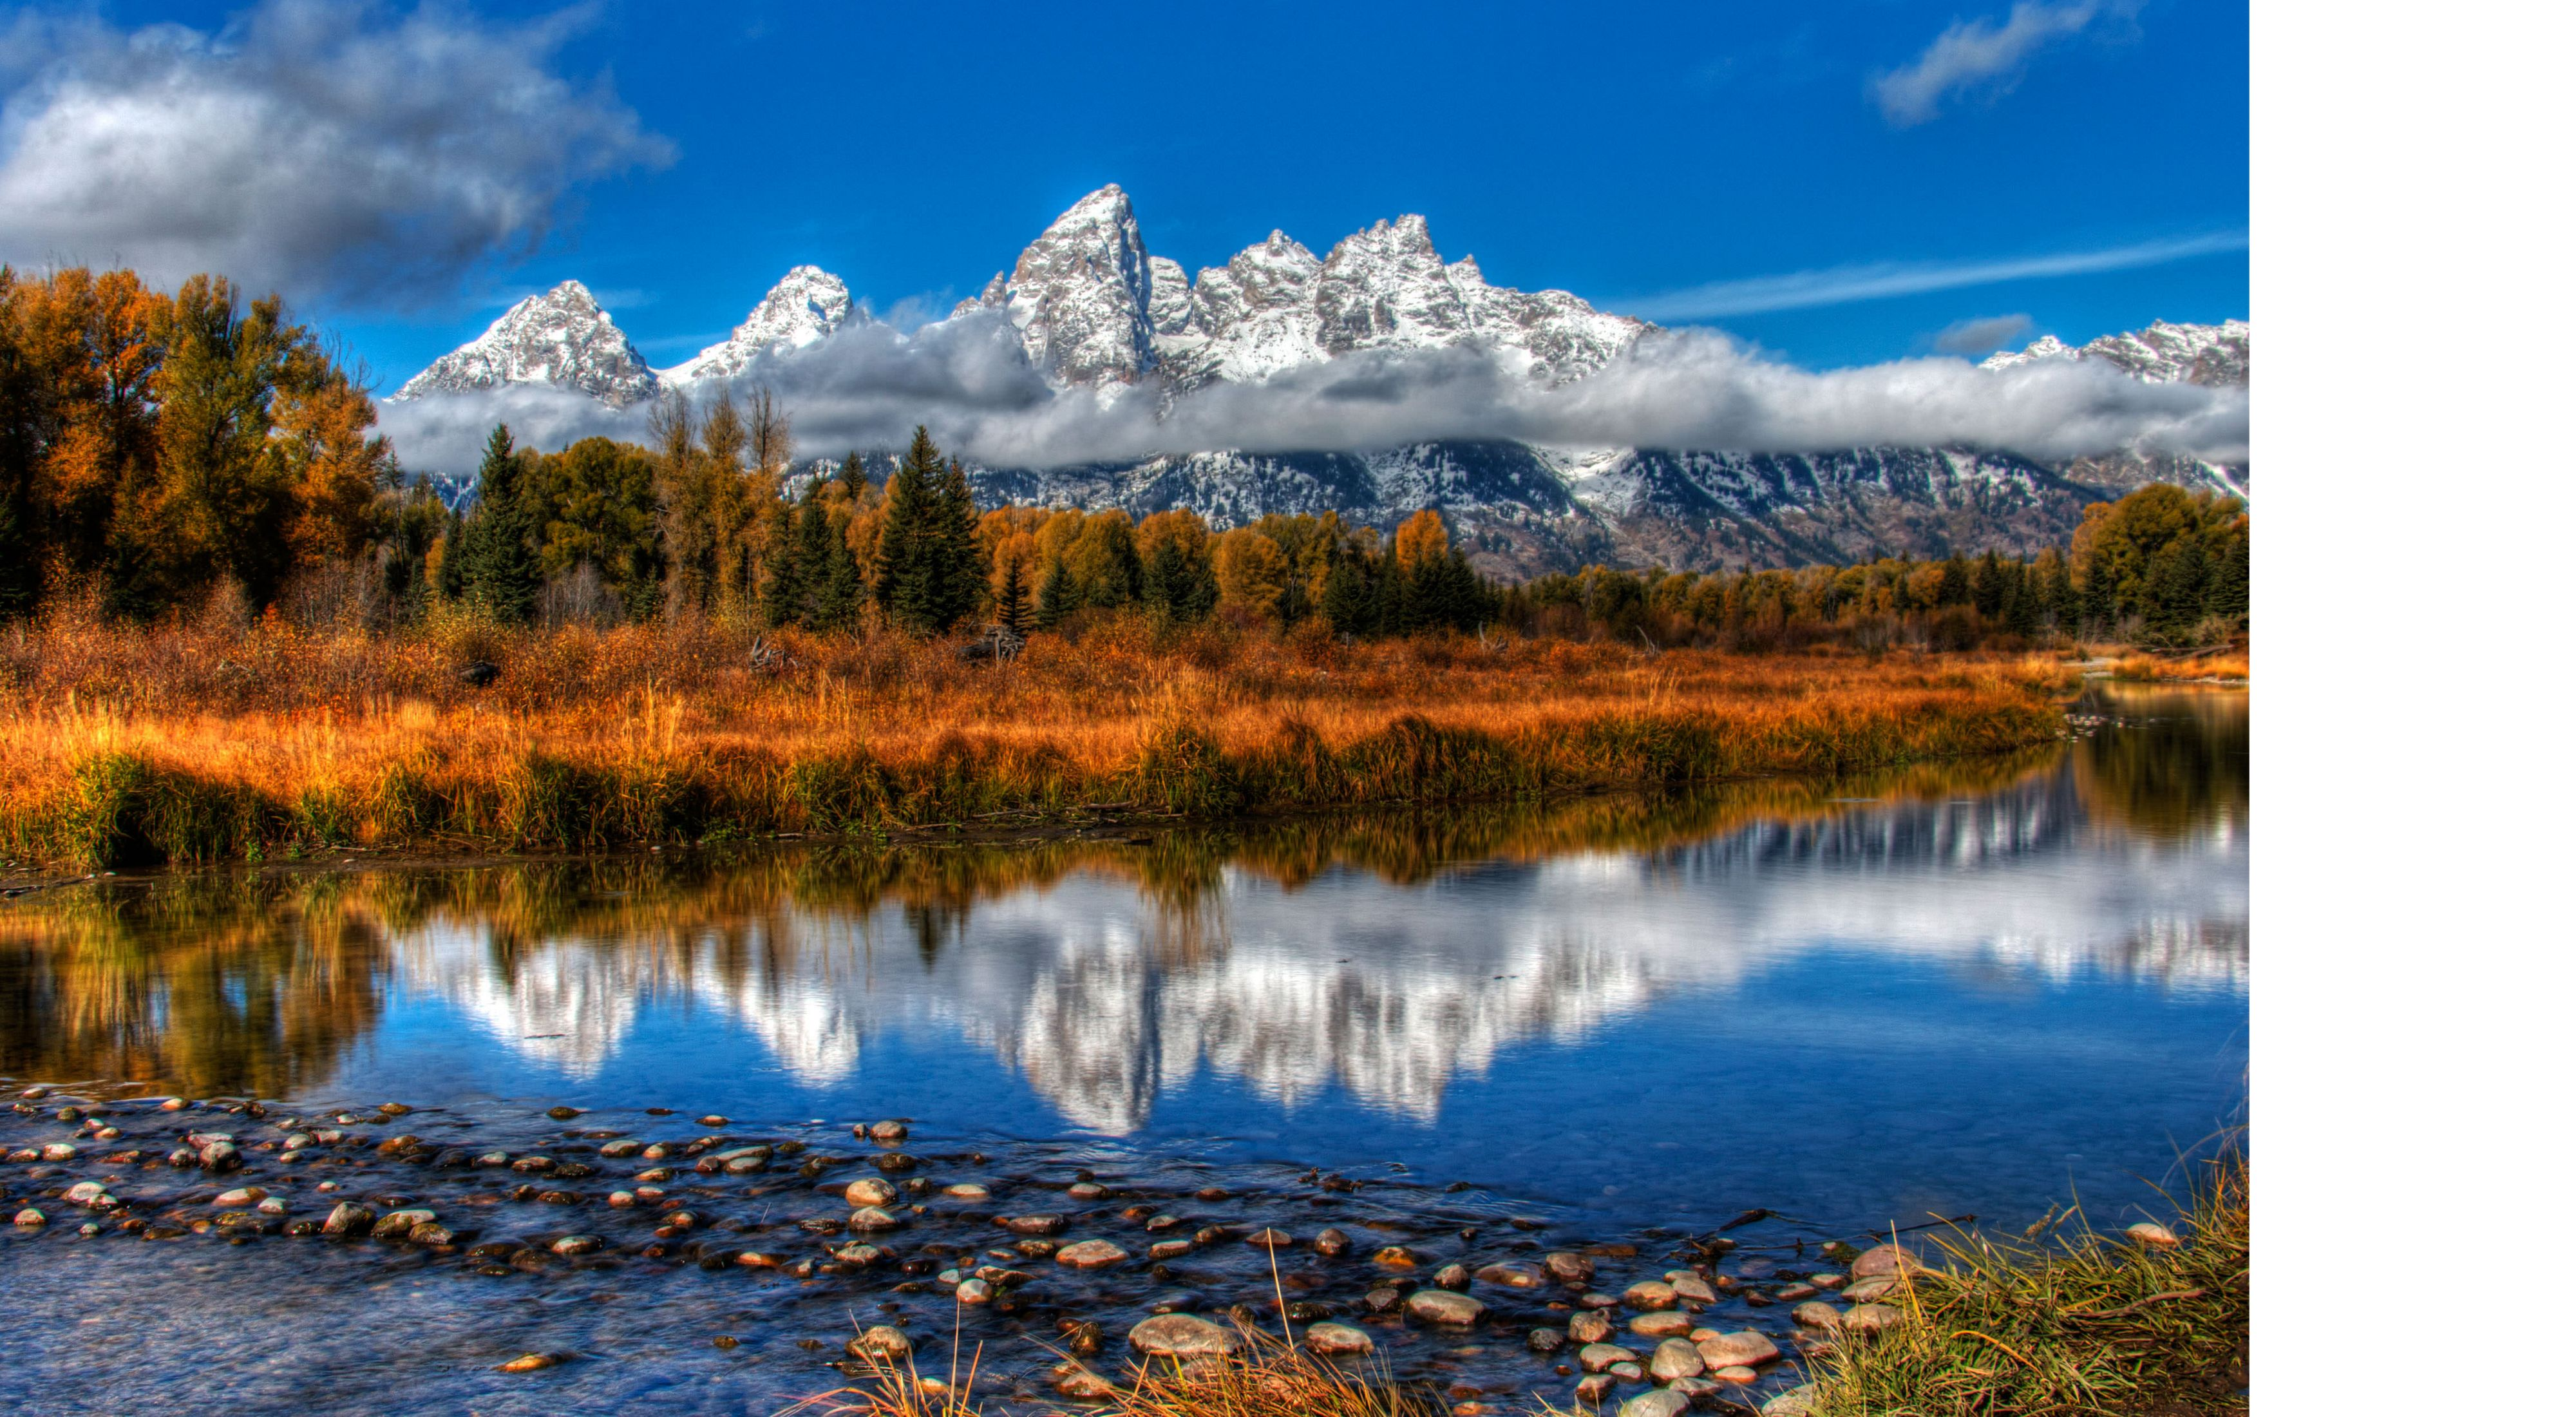 of the snowy Grand Tetons in Wyoming.